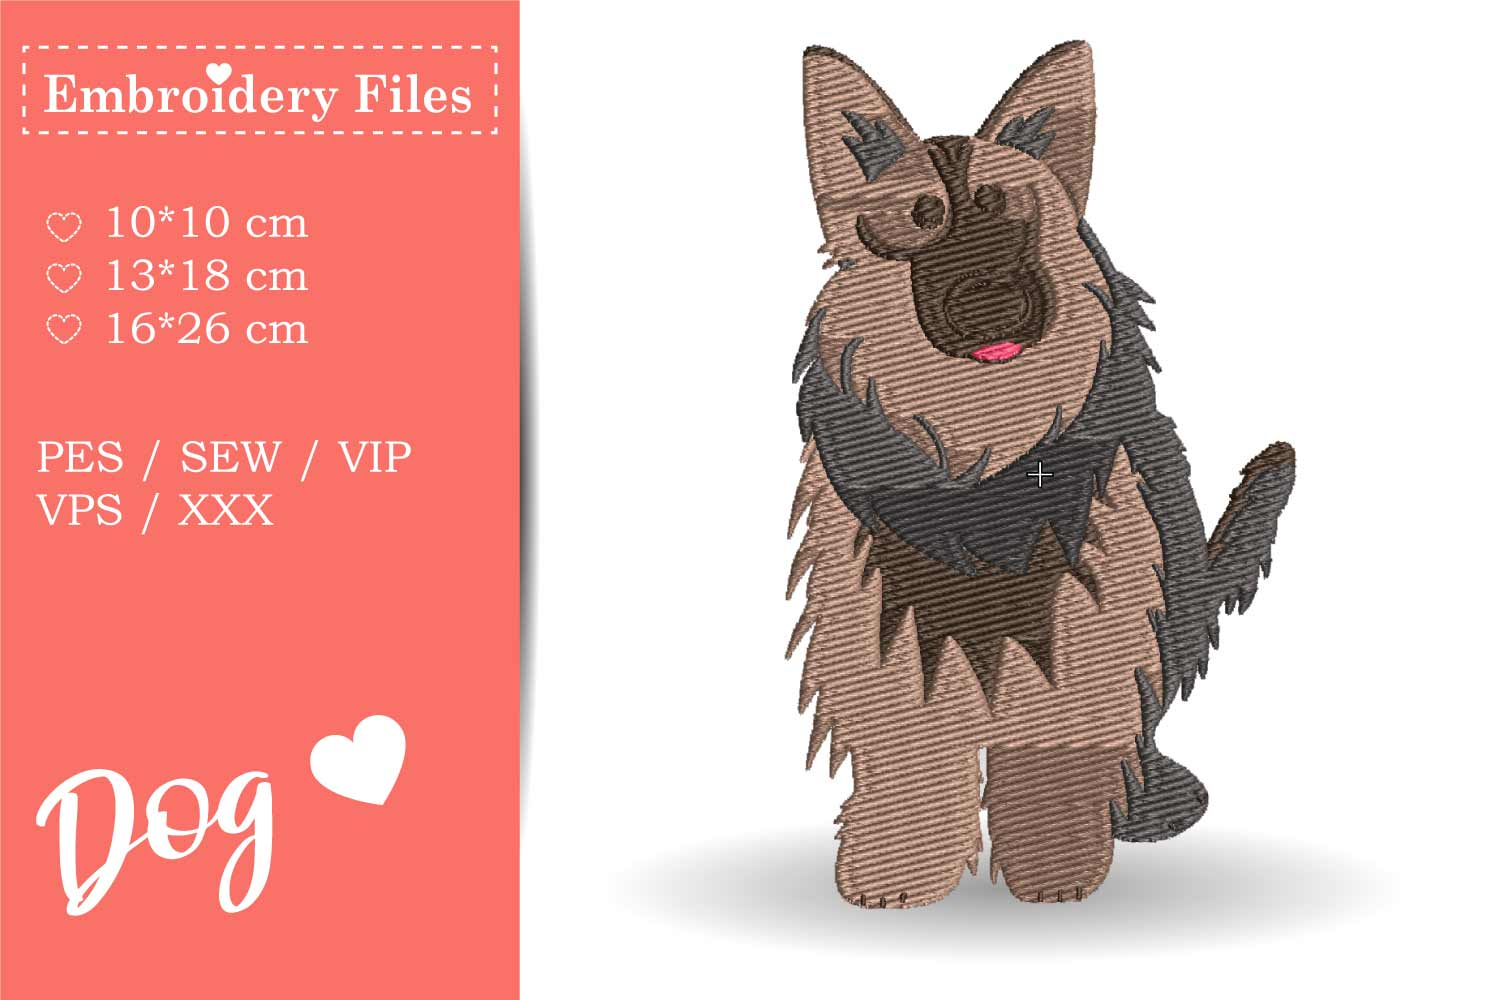 Dogs - Mini Bundle - Embroidery Files for Beginners example image 10